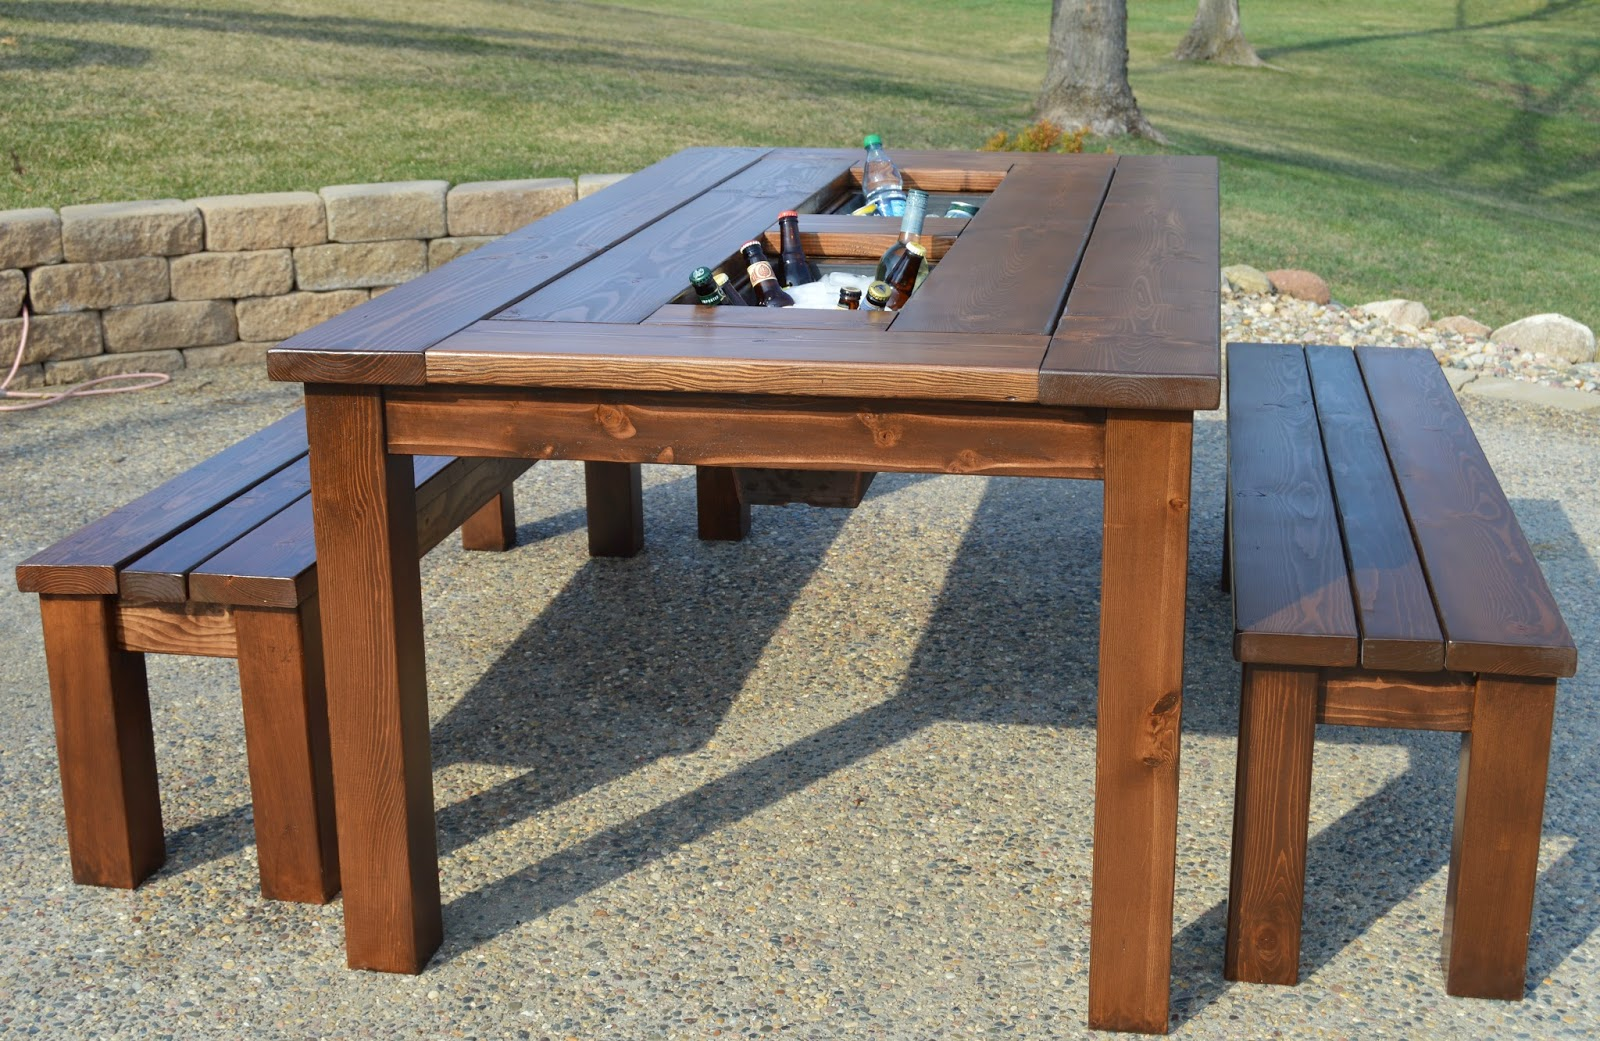 Kruse 39 s workshop patio party table with built in beer Table making ideas